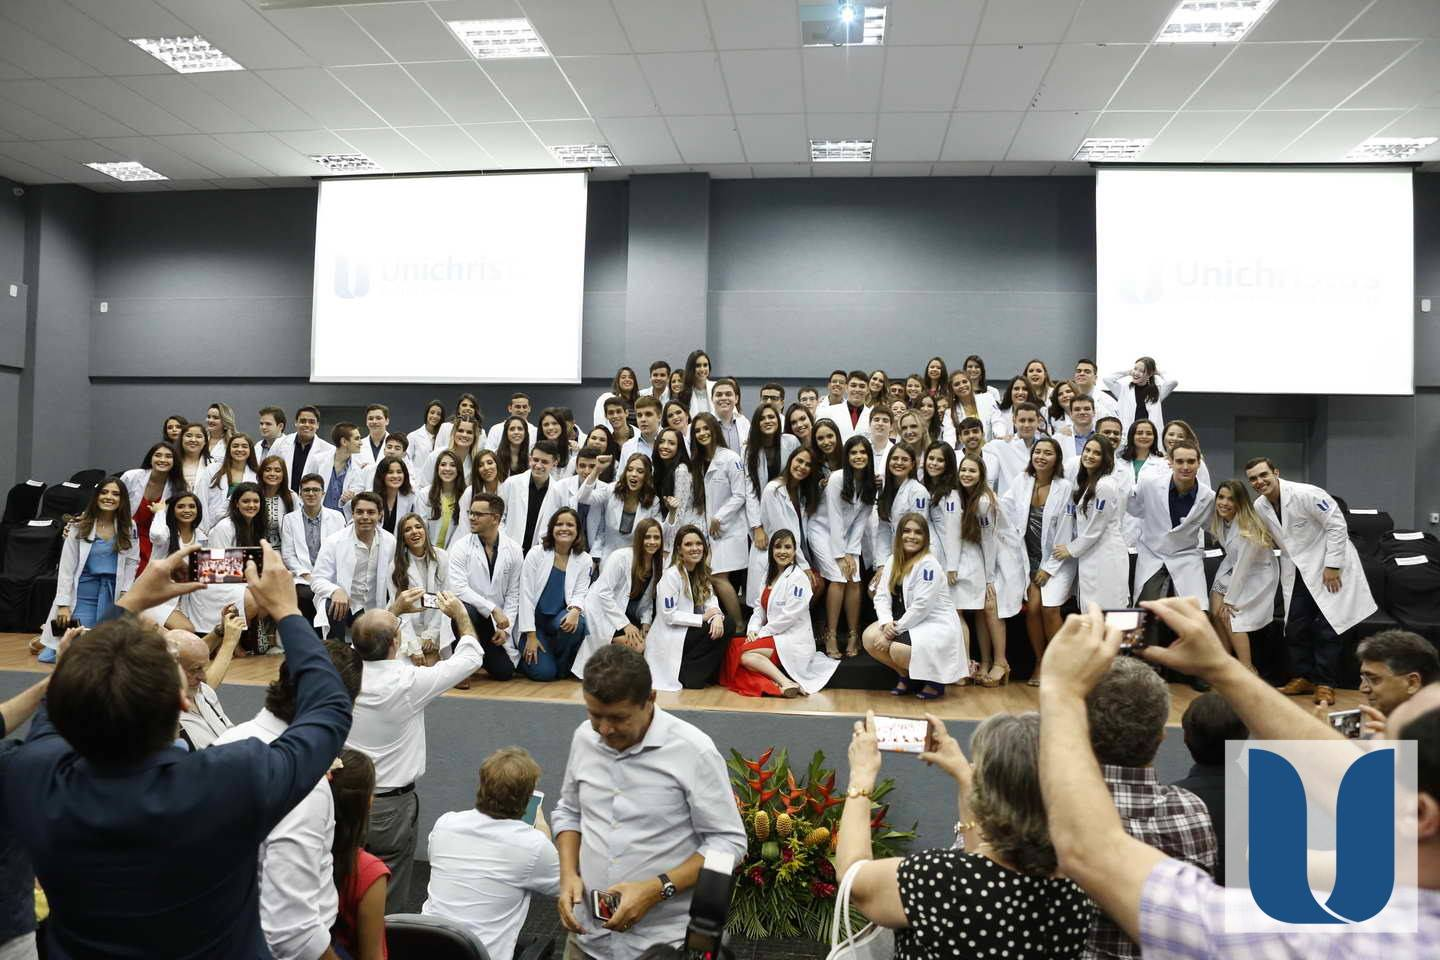 Cerimônia do Jaleco do Curso de Medicina